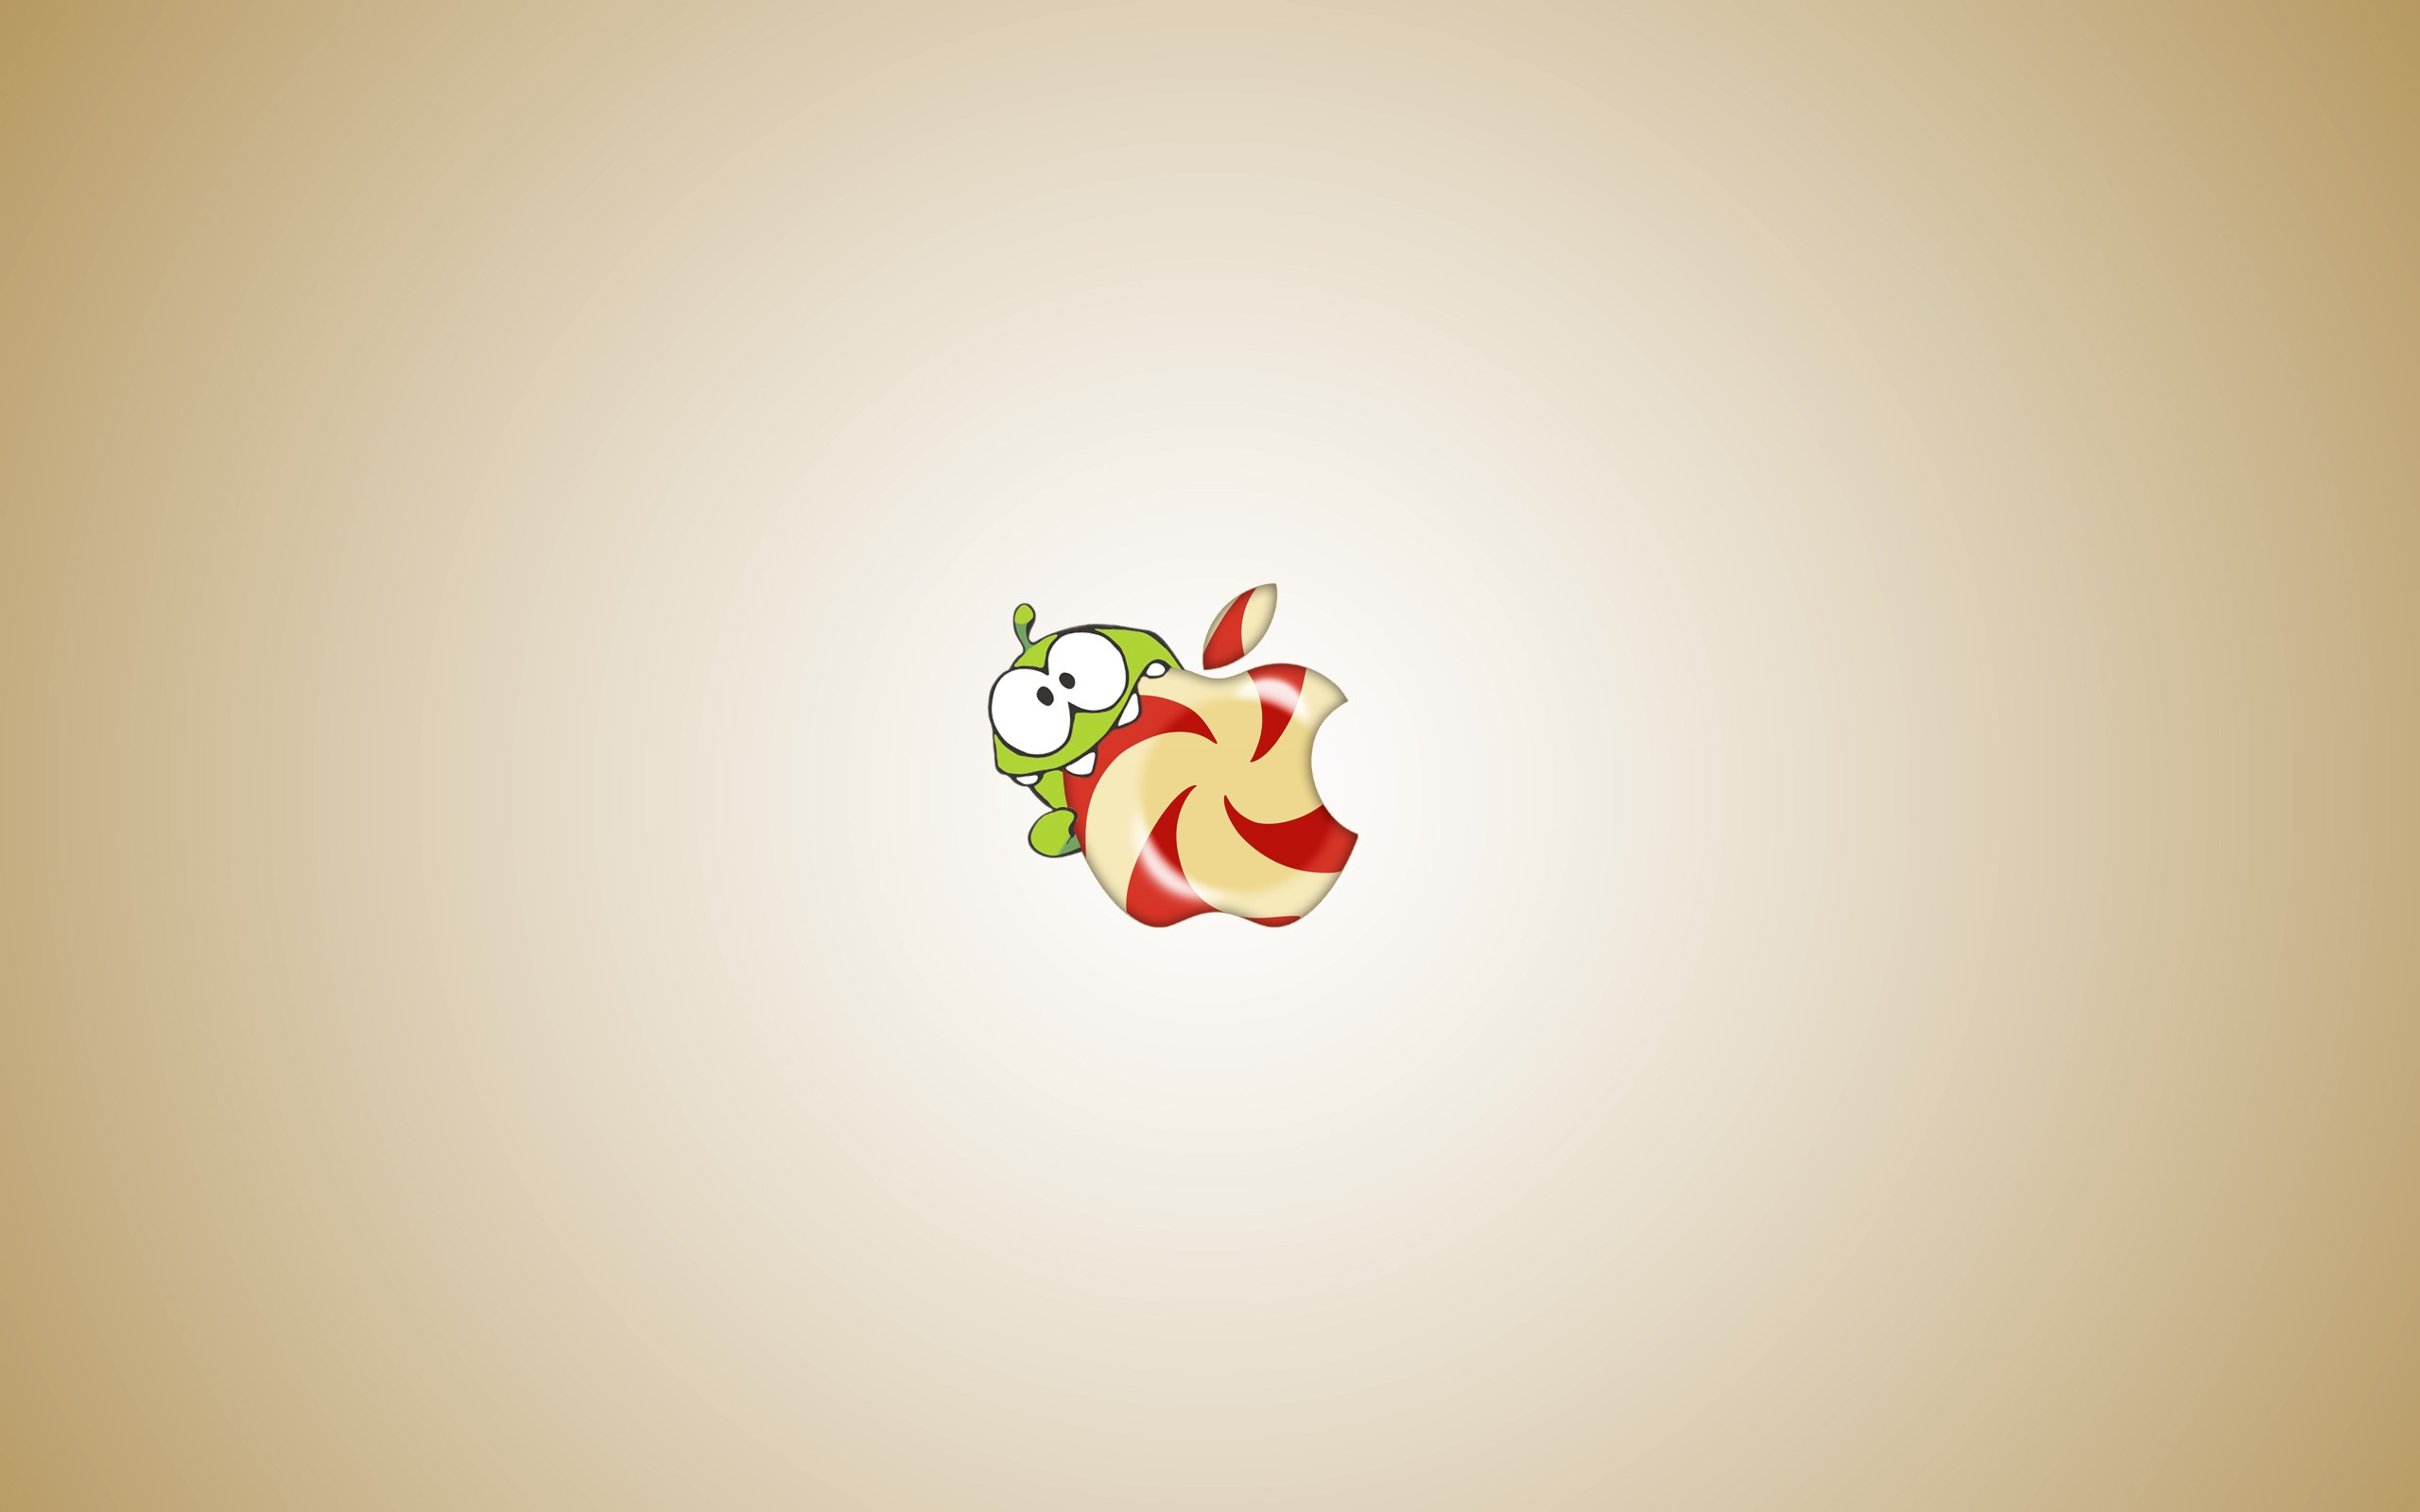 Om Nom Cut The Rope Apple Candy Game Art